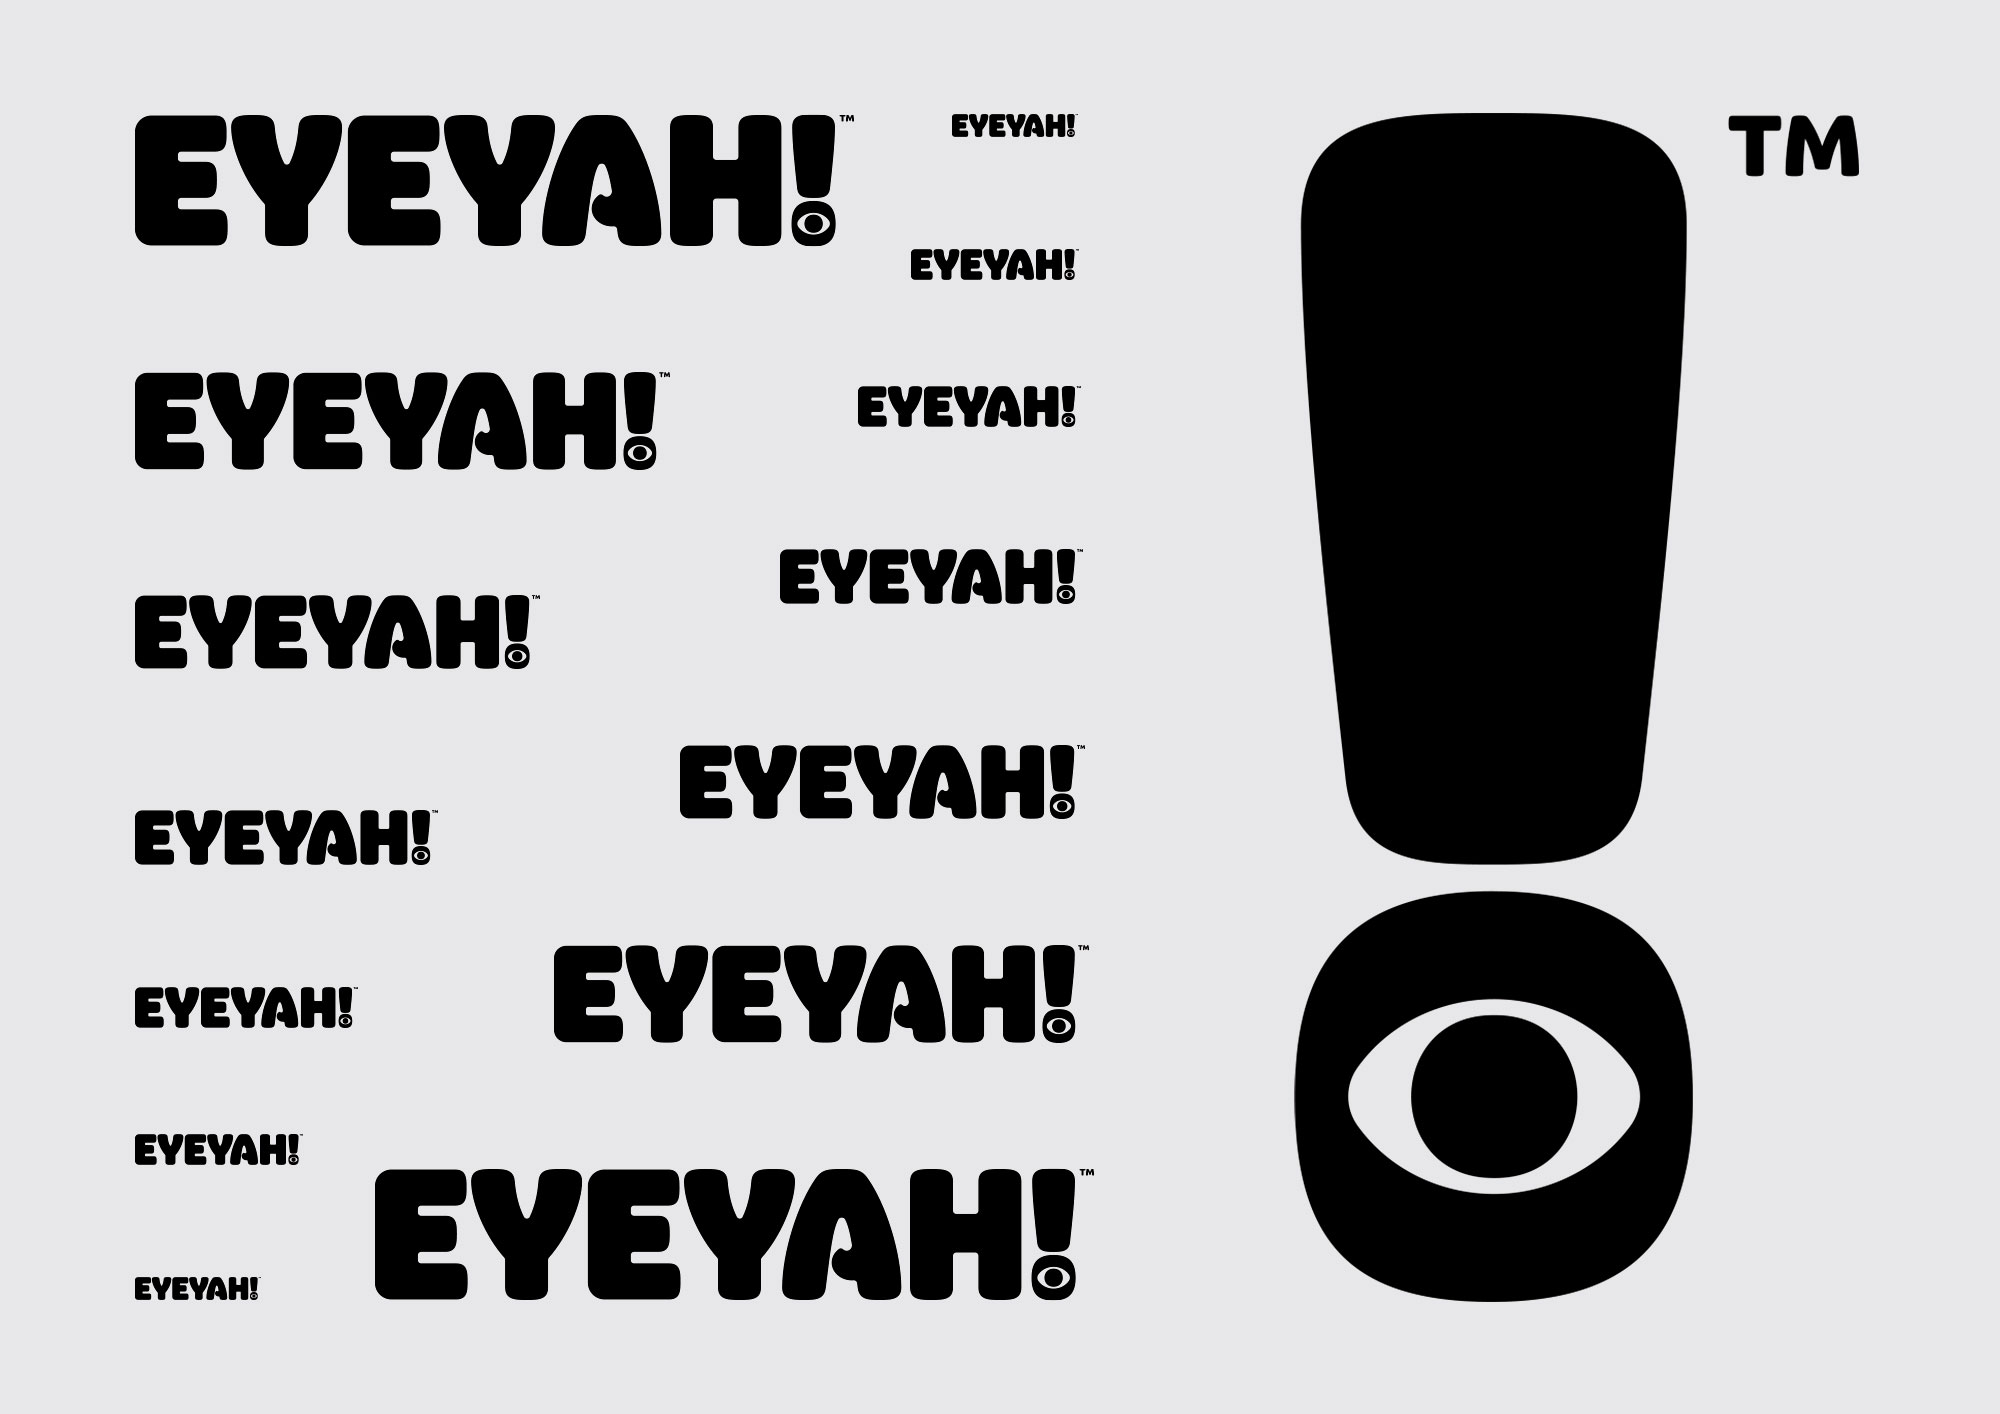 Identity design for EYEYAH! logo legibility at different scale.